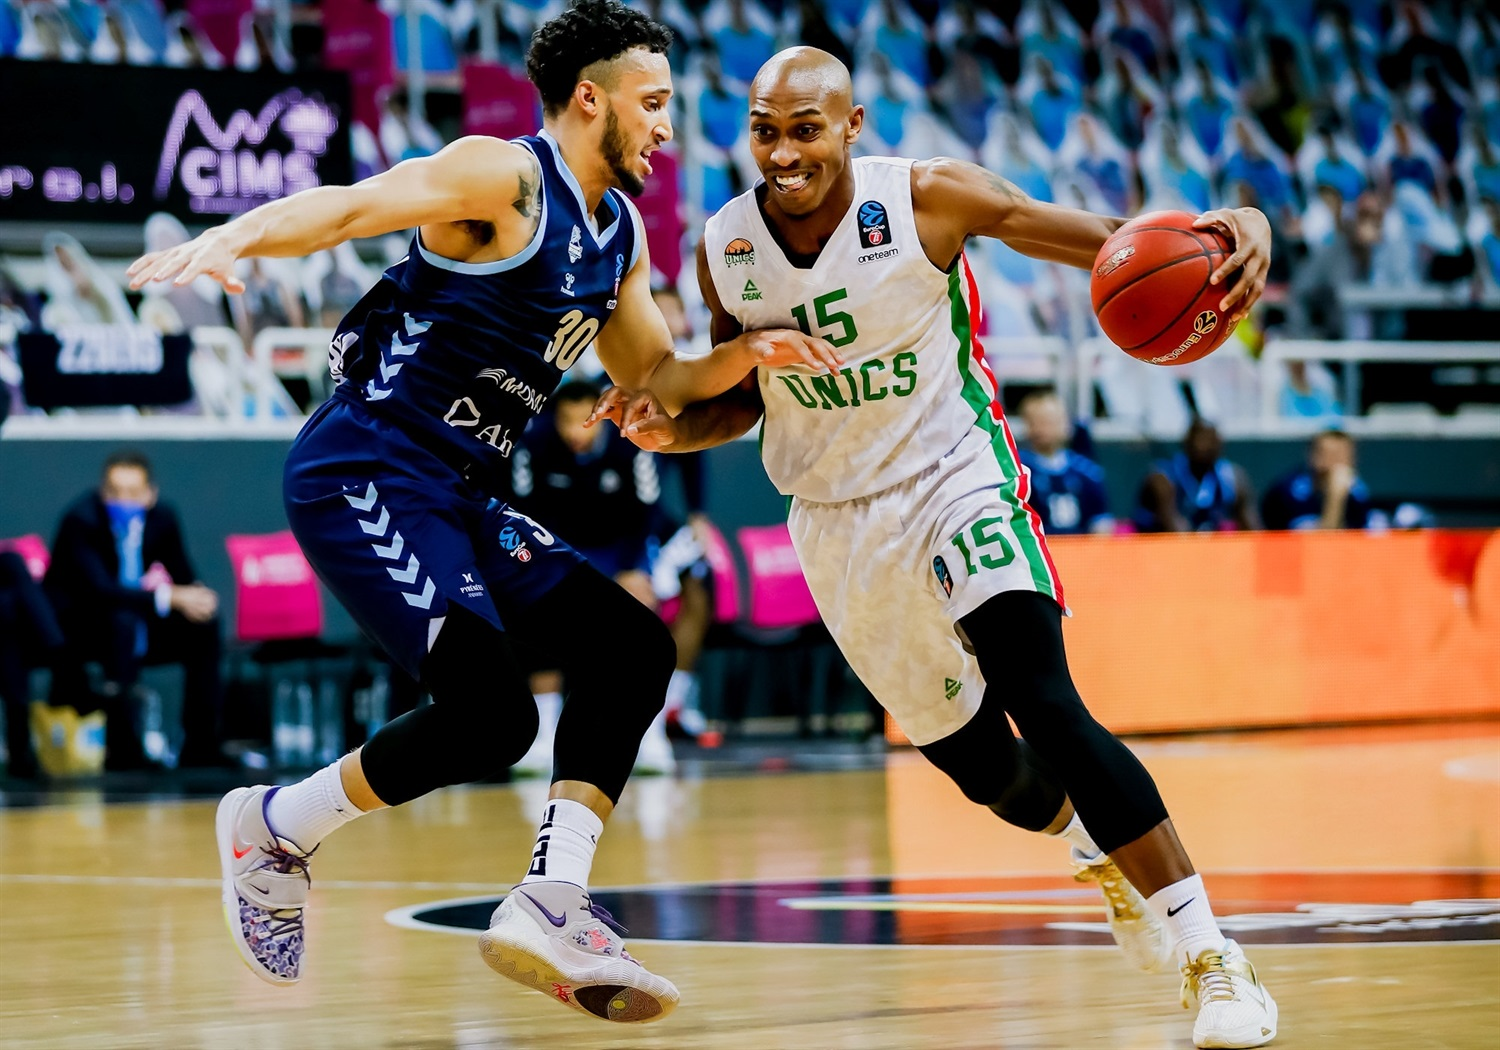 Jamar Smith - UNICS Kazan (photo Andorra - Martin Imatge) EC20